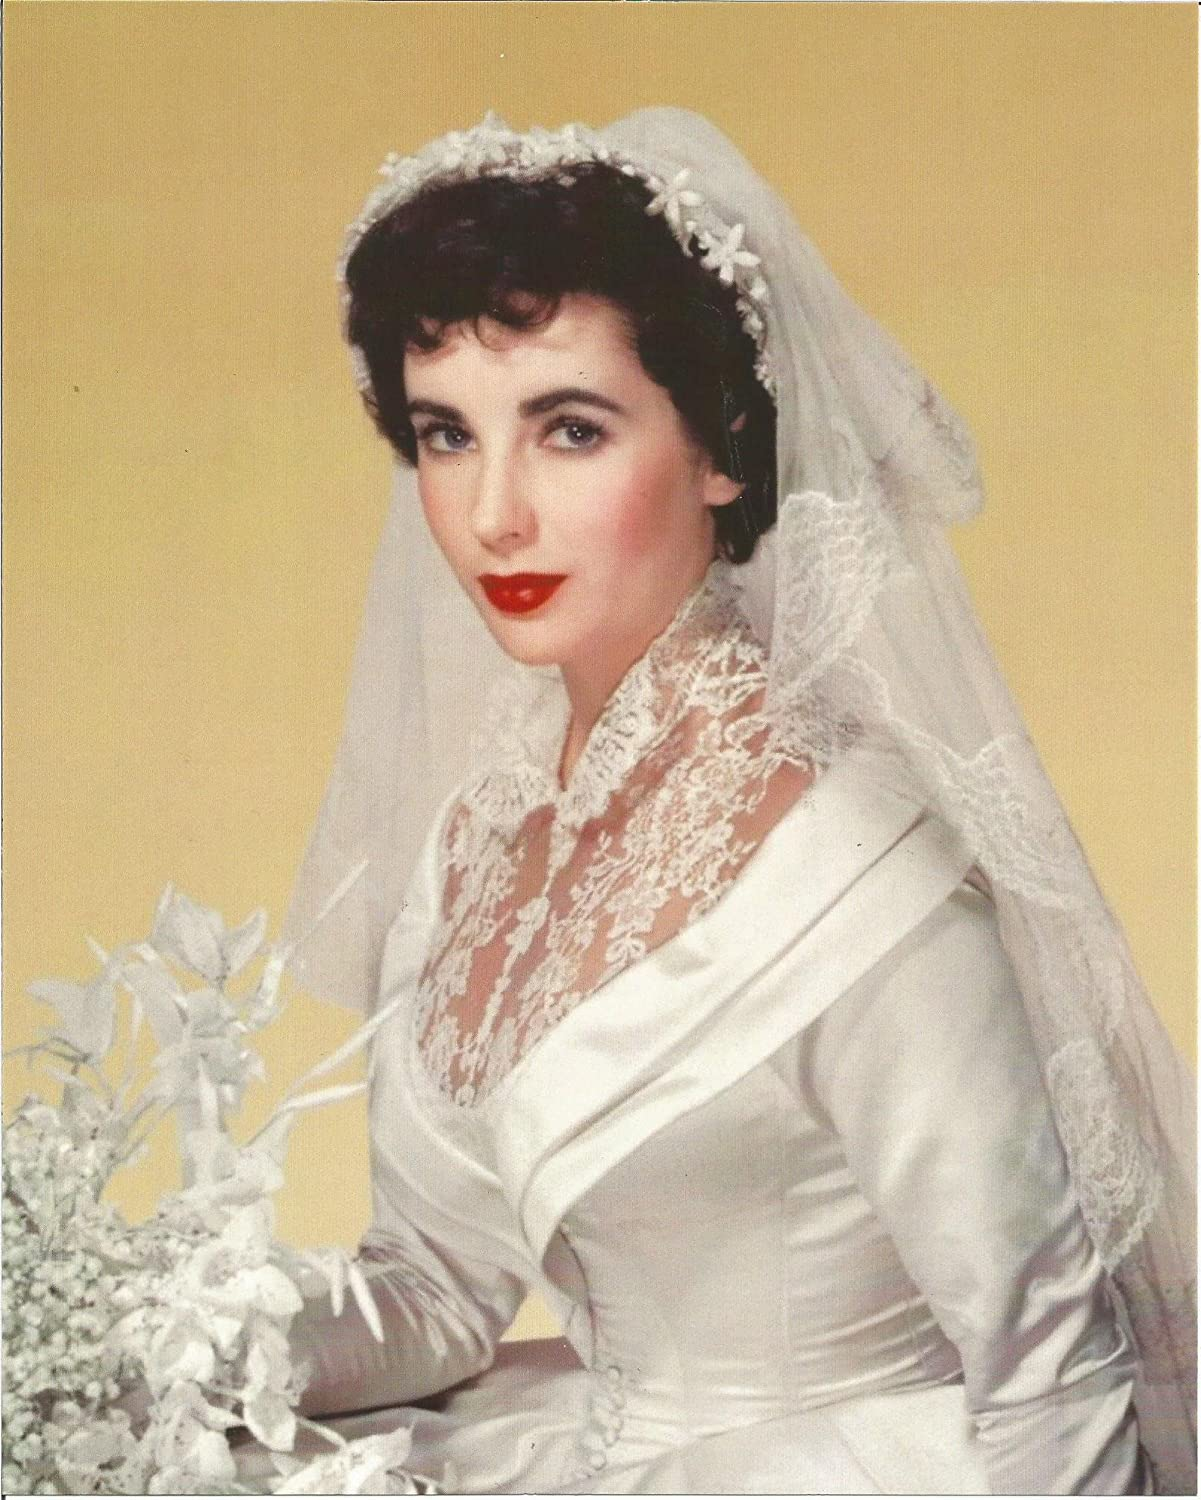 Father Of The Bride Elizabeth Taylor In Wedding Dress Holding